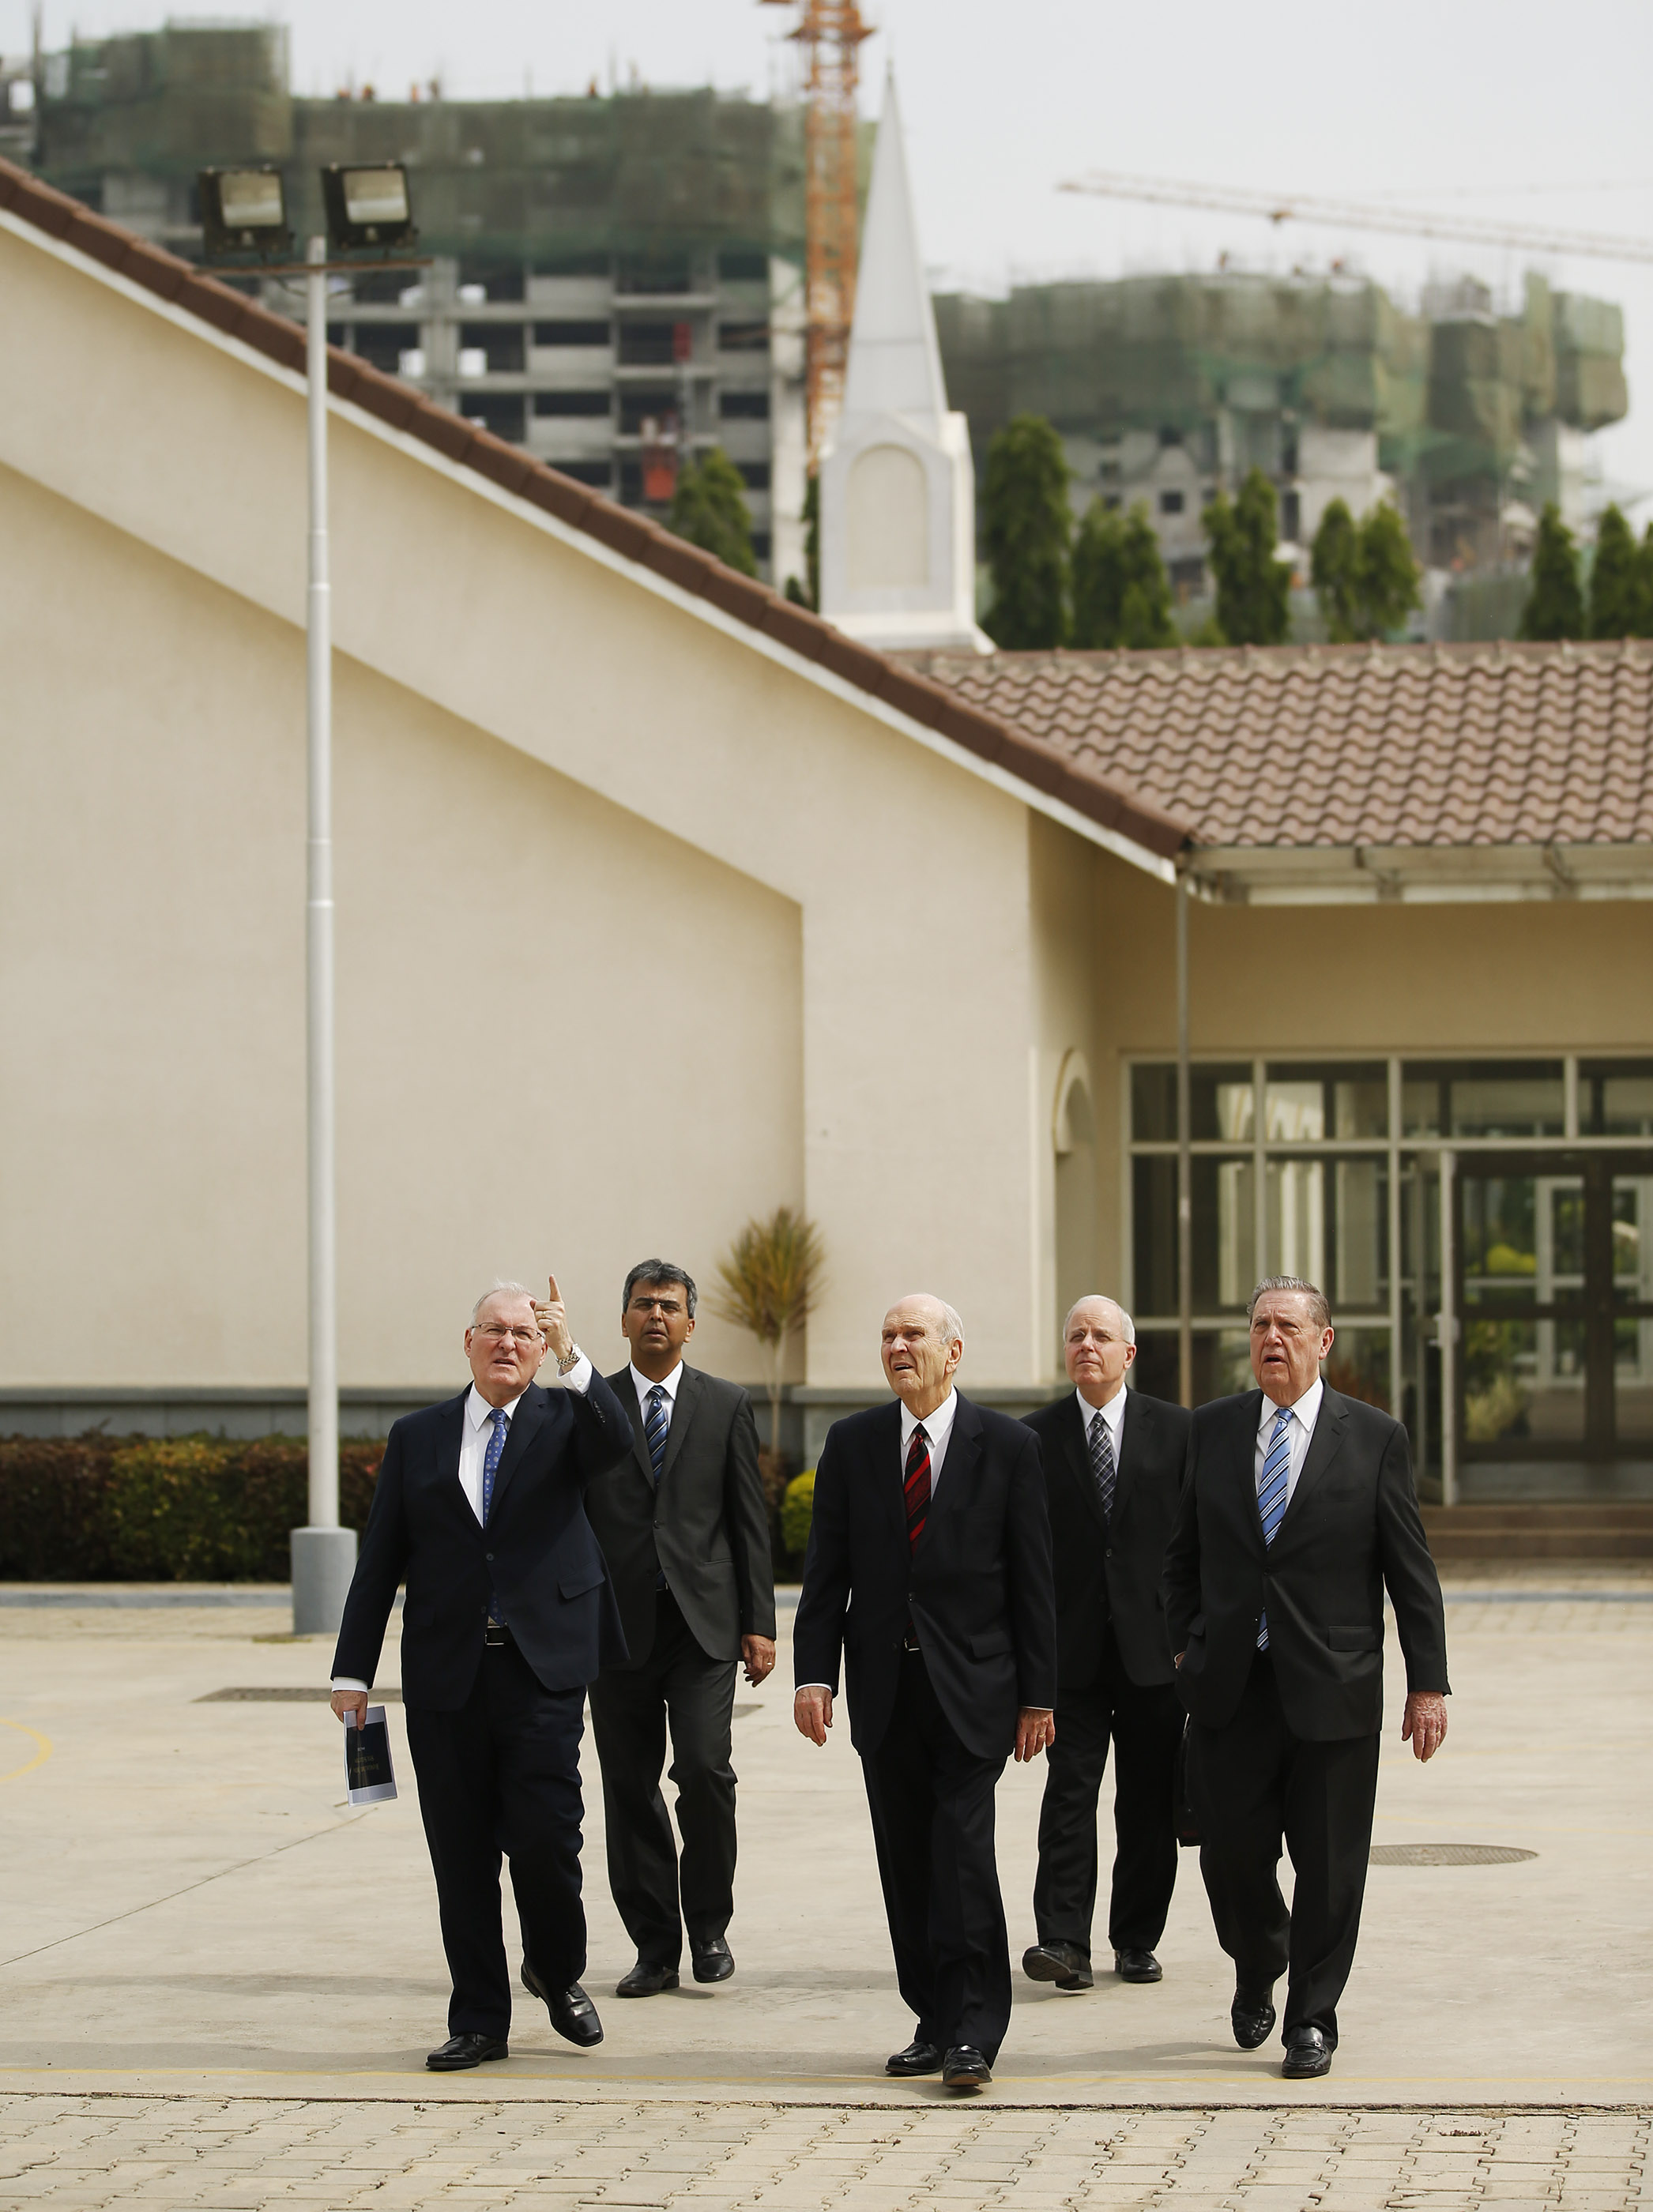 President Russell M. Nelson and Elder Jeffrey R. Holland of the Quorum of the Twelve Apostles, look over a possible temple site in Bengaluru, India, on Thursday, April 19, 2018. They are accompanied by Elder Randy D. Funk, General Authority Seventy, and Elder Robert K. William, an Area Seventy.